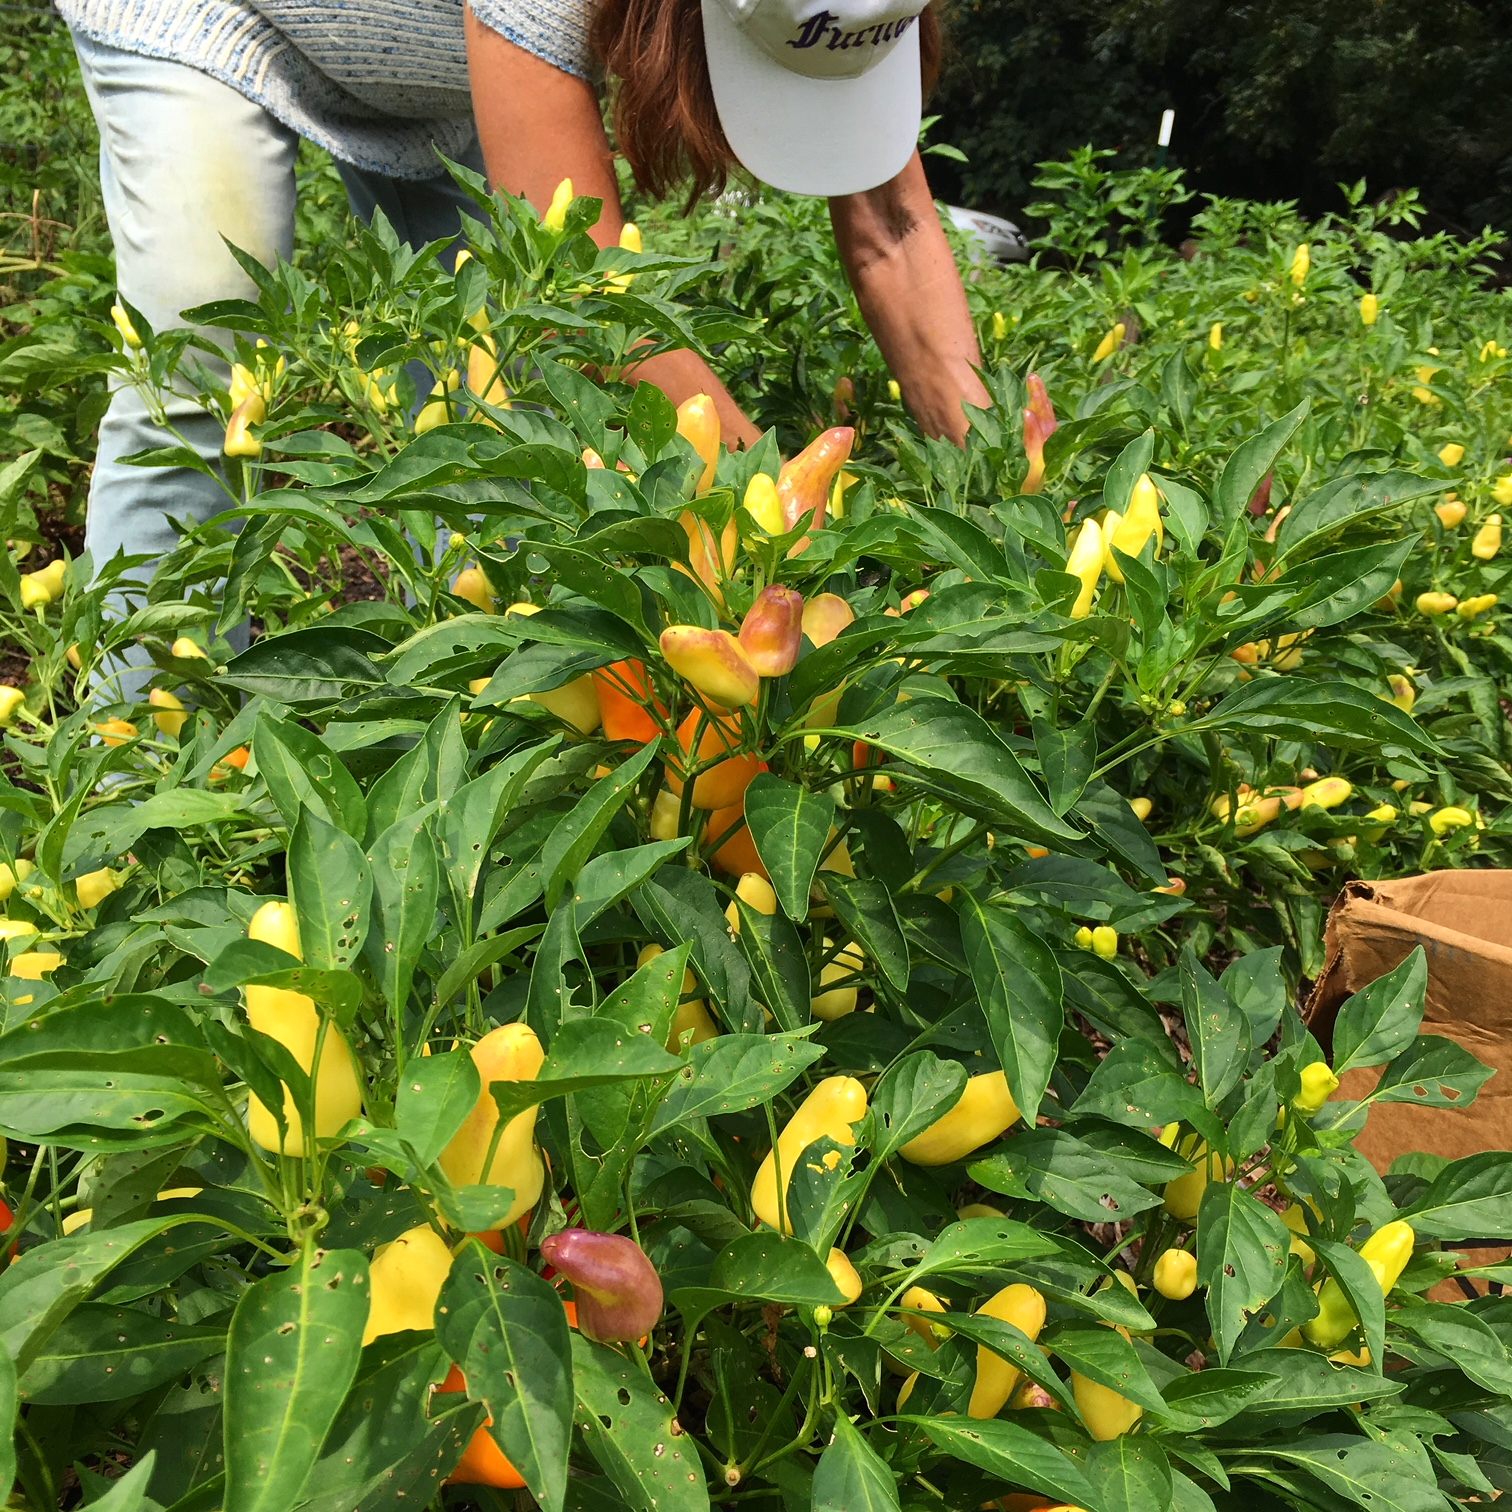 My mom picking Sweet Pickle Peppers out at Oak Hill Cafe & Farm in Greenville, SC. This is a great variety of pickling pepper that produces loads of colorful fruit. Yes, Sweet Pickling Peppers taste great raw or cooked too! / Ways to use lots of peppers, article by GrowJourney.com